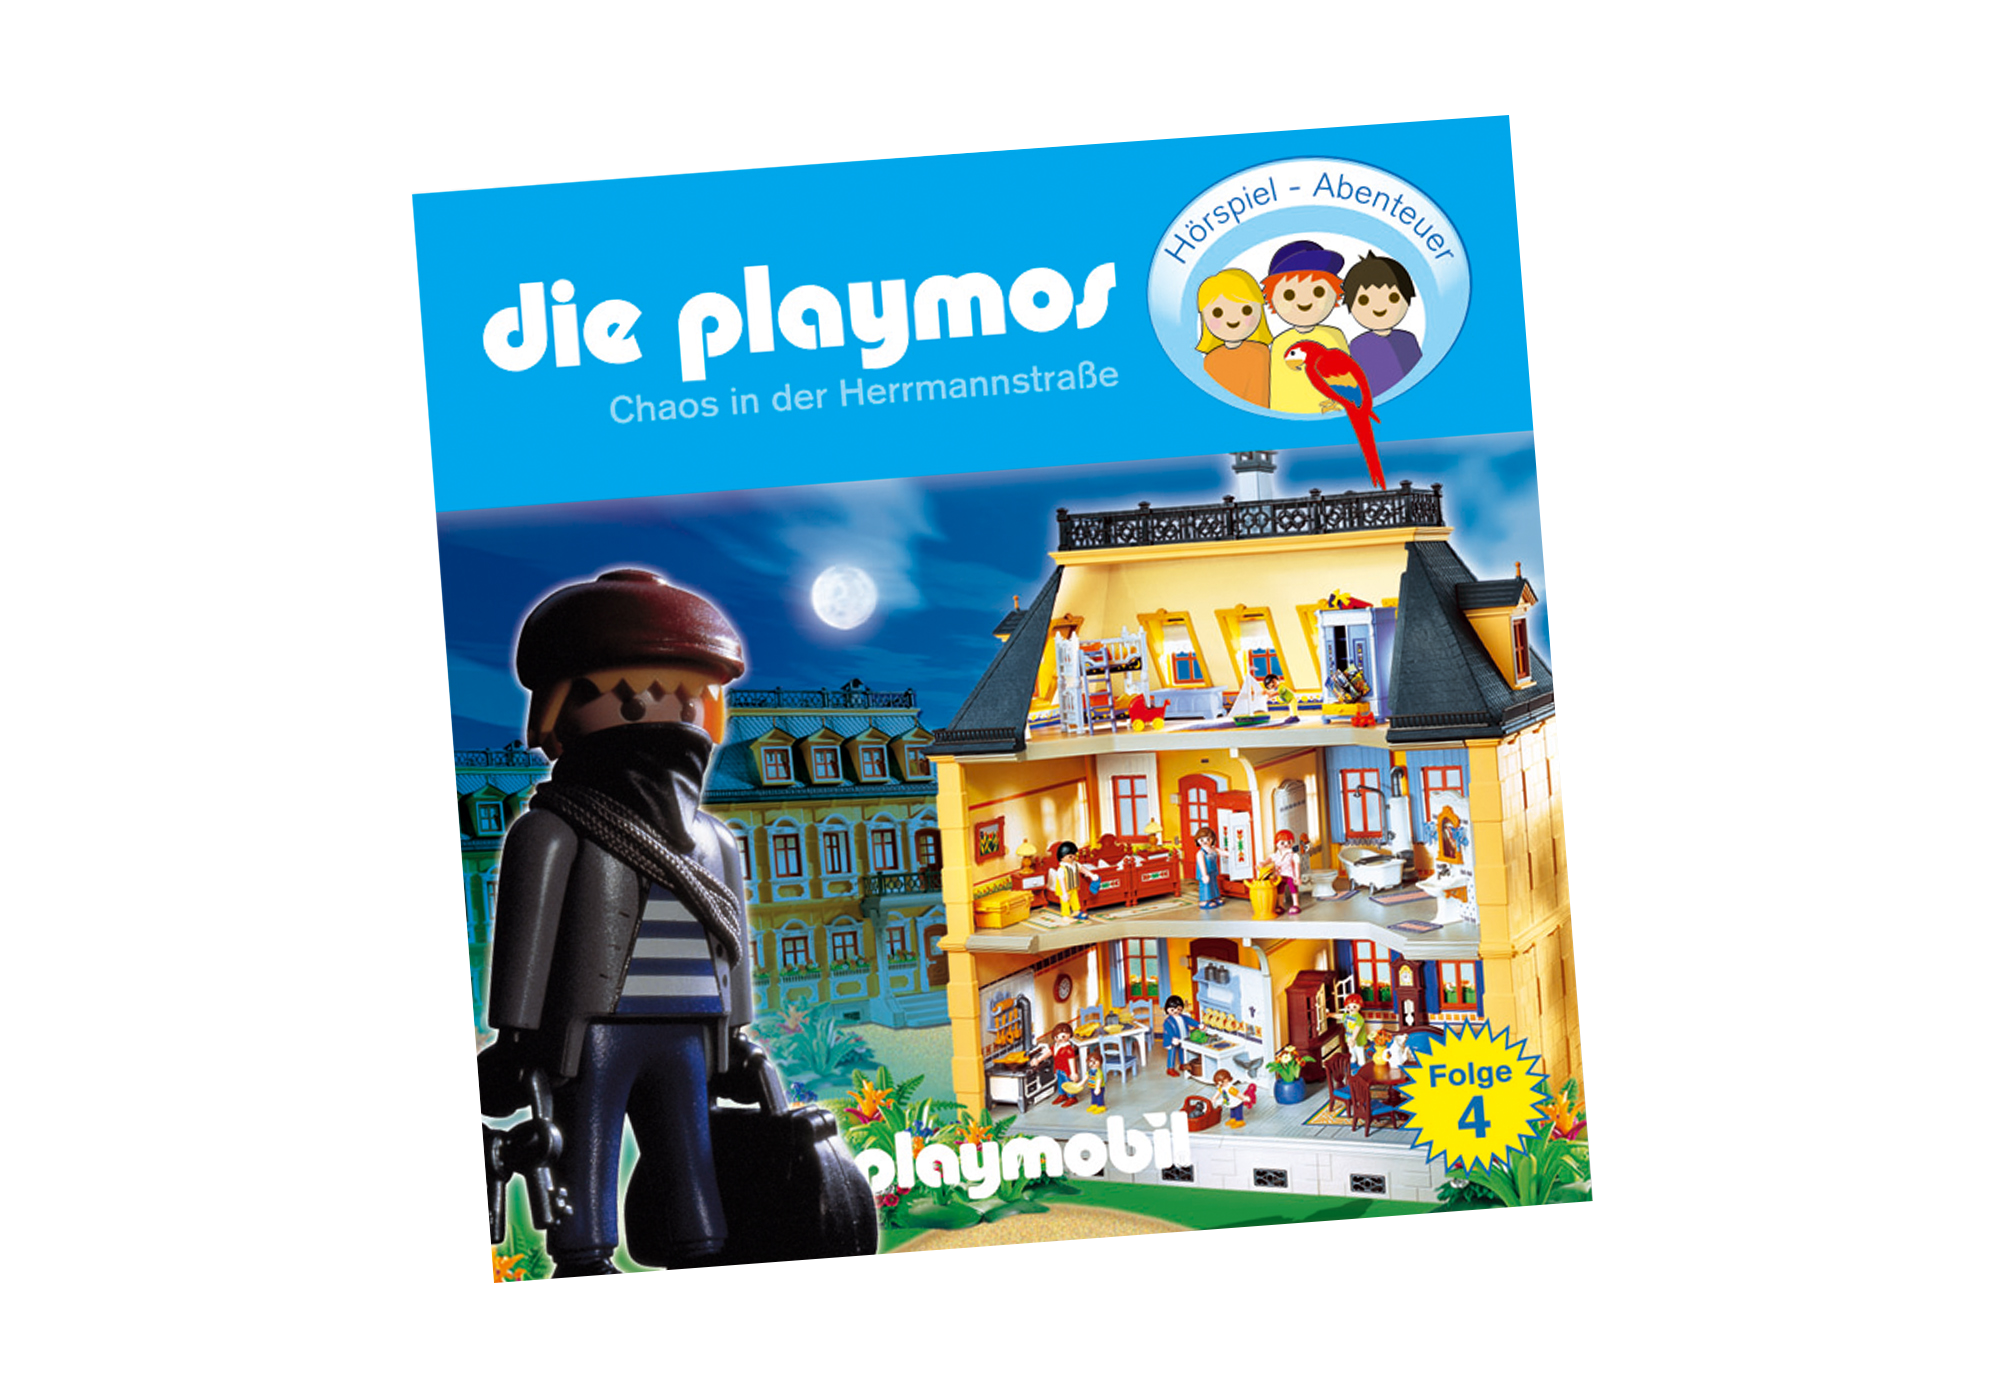 http://media.playmobil.com/i/playmobil/80134_product_detail/Chaos in der Herrmannstraße (4) - CD